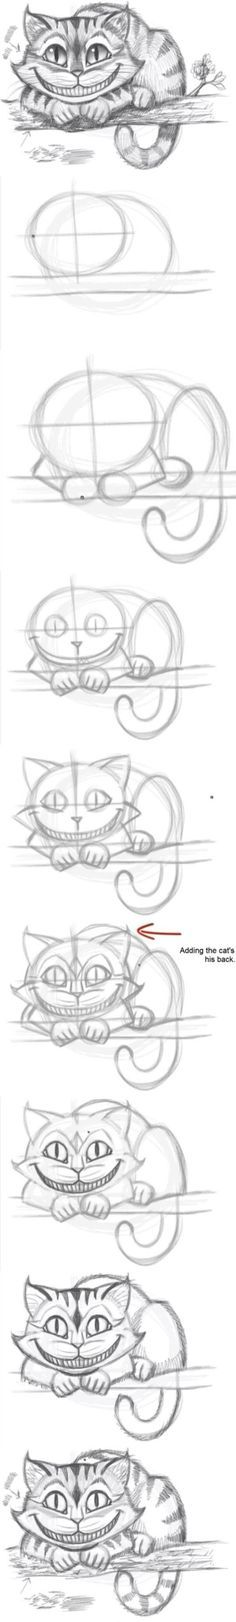 How to Draw the Cheshire Cat by useful diy: : ) #Drawing #Cheshire_Cat by LisaDB